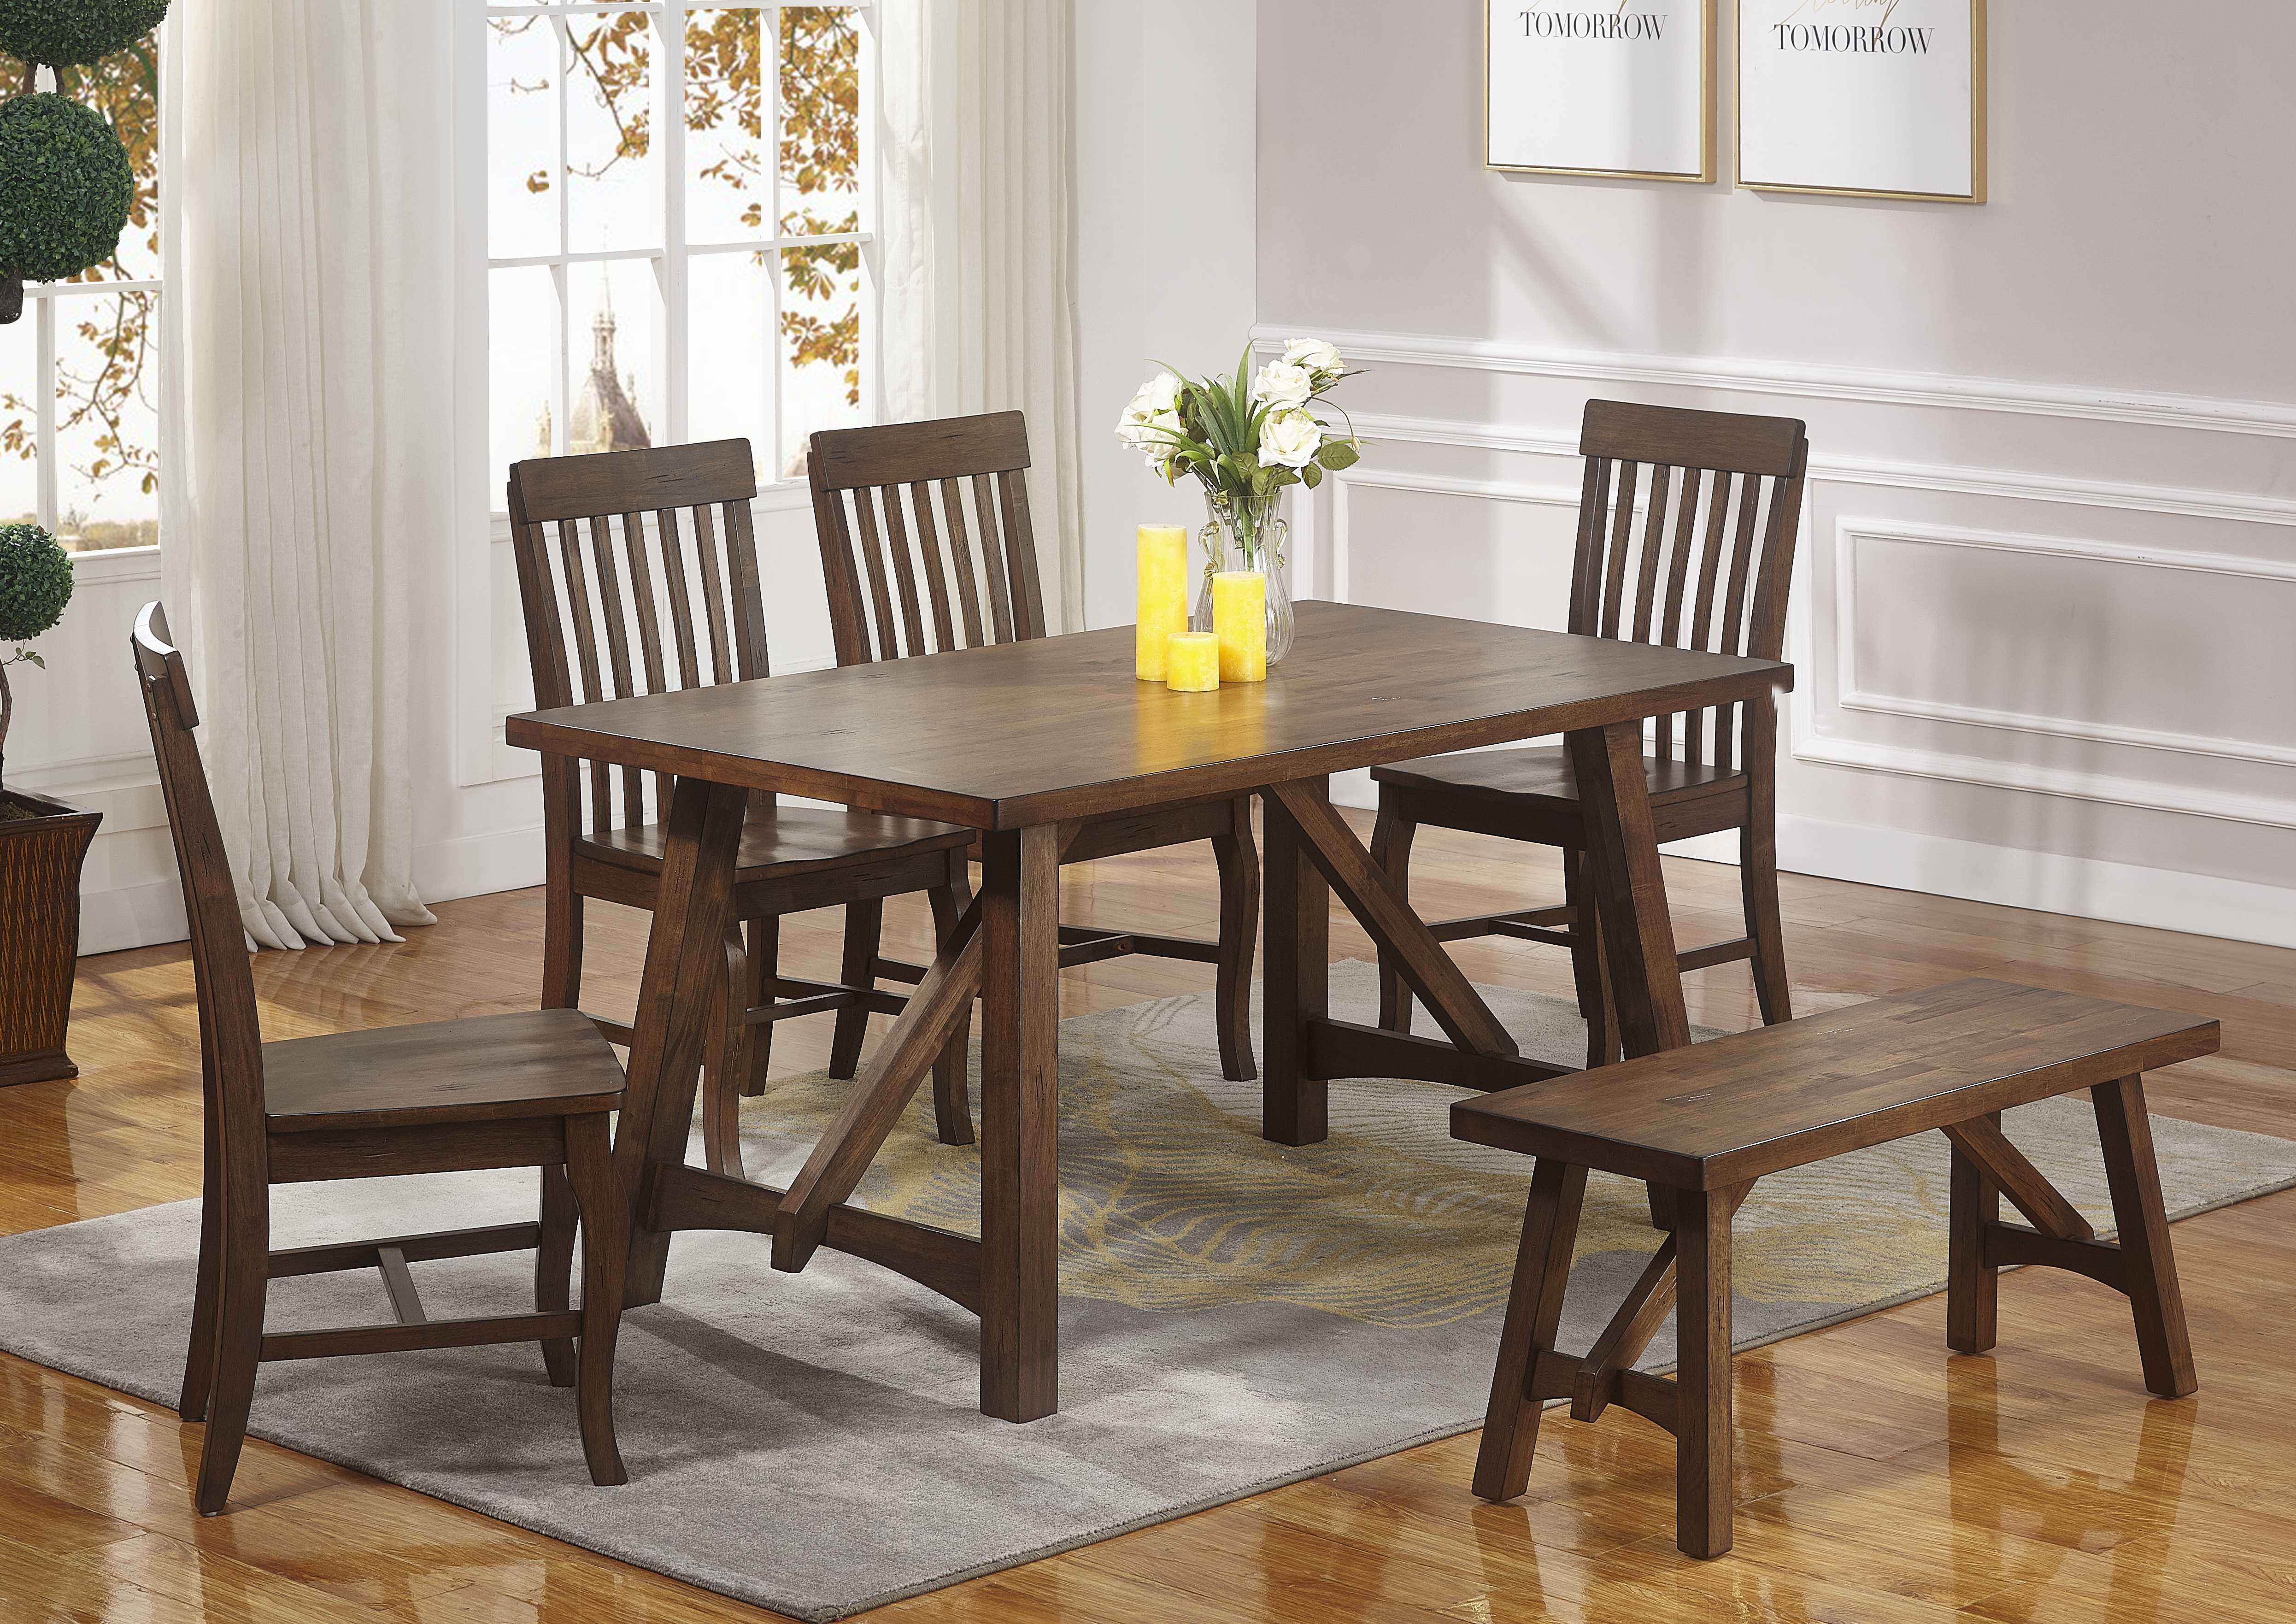 T9 Ottawa Dining Furniture   TOP SYSTEMS GROUP